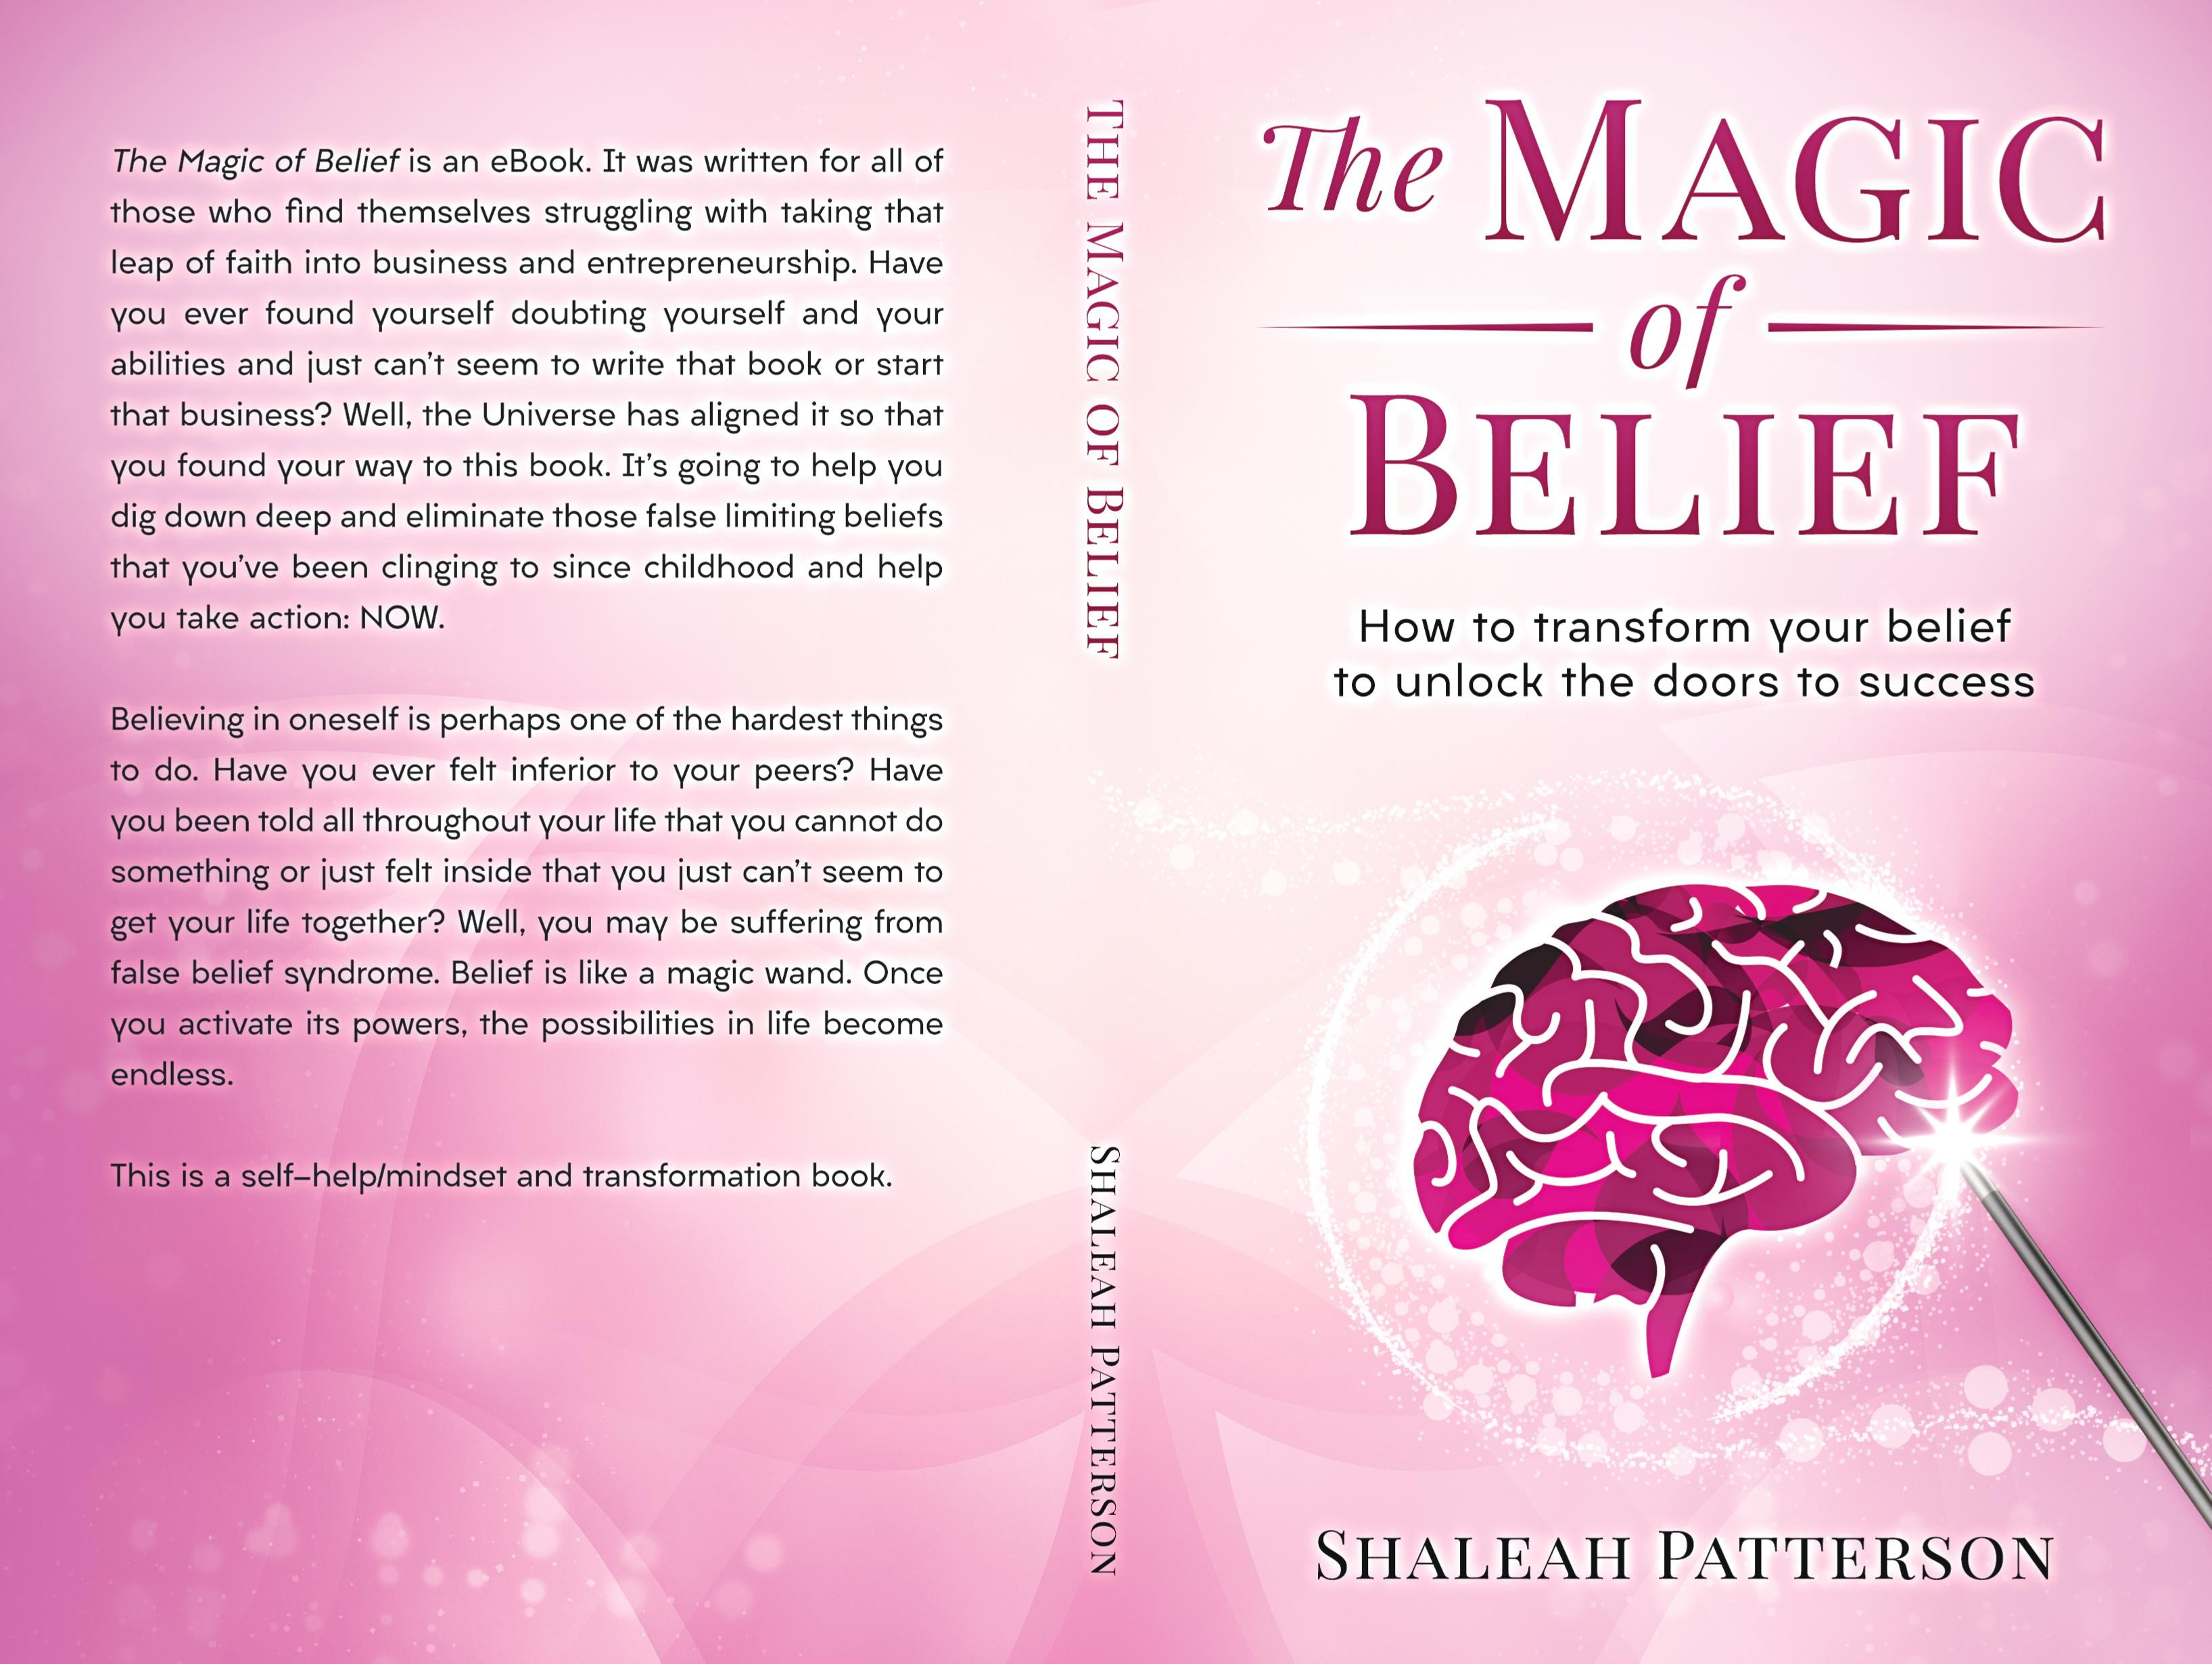 The Magic of Belief (eBook)